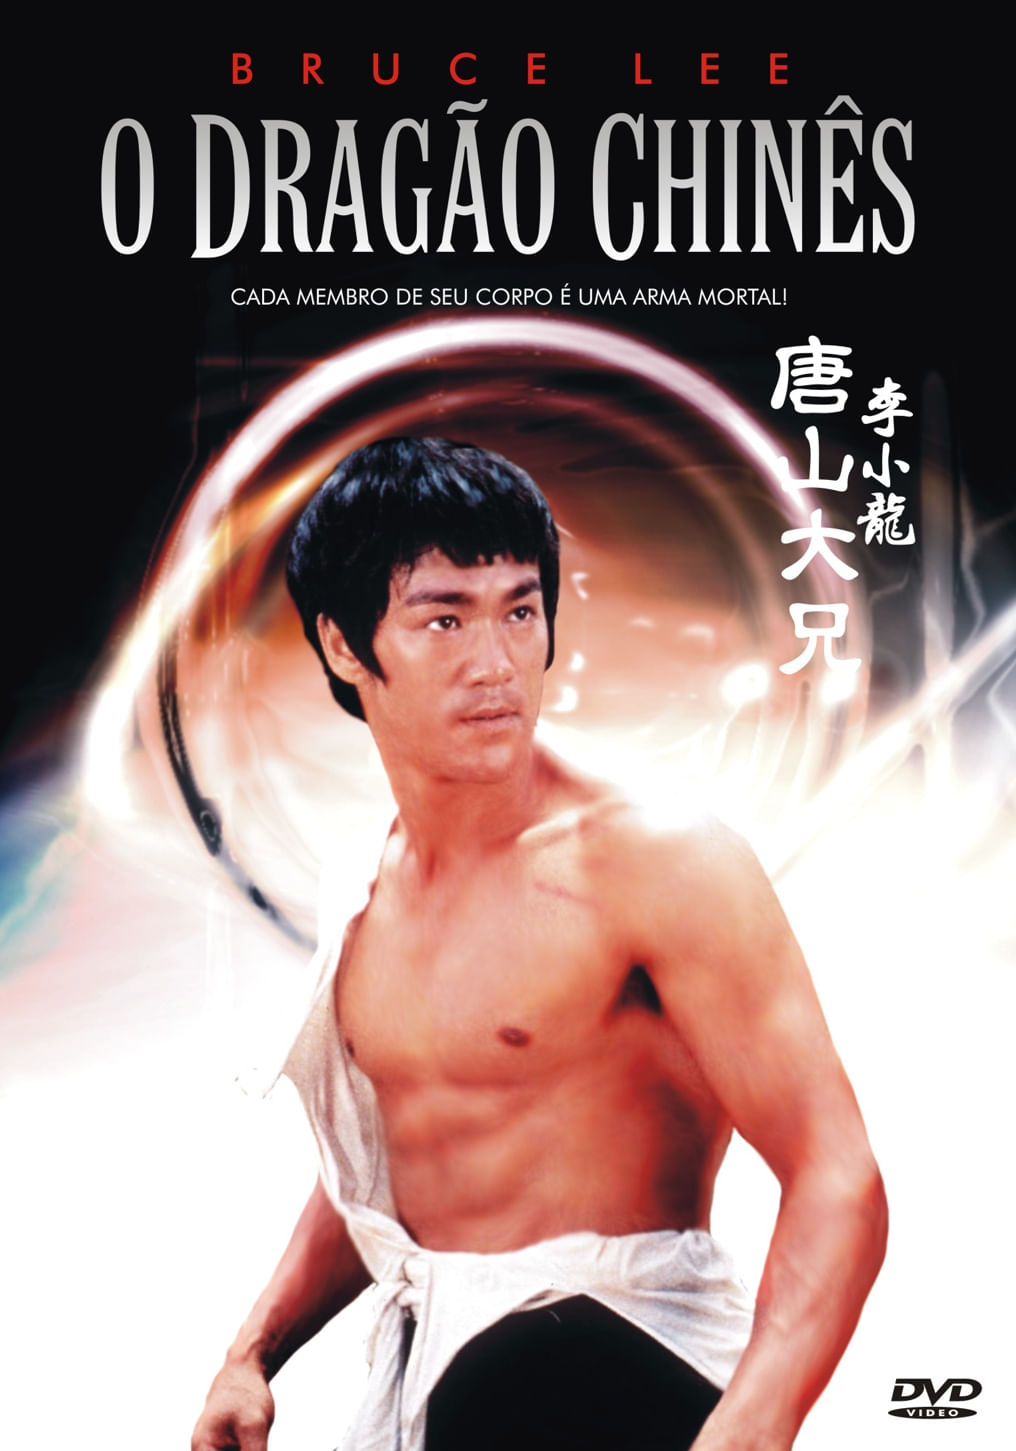 DRAGAO-CHINES-O---dvd